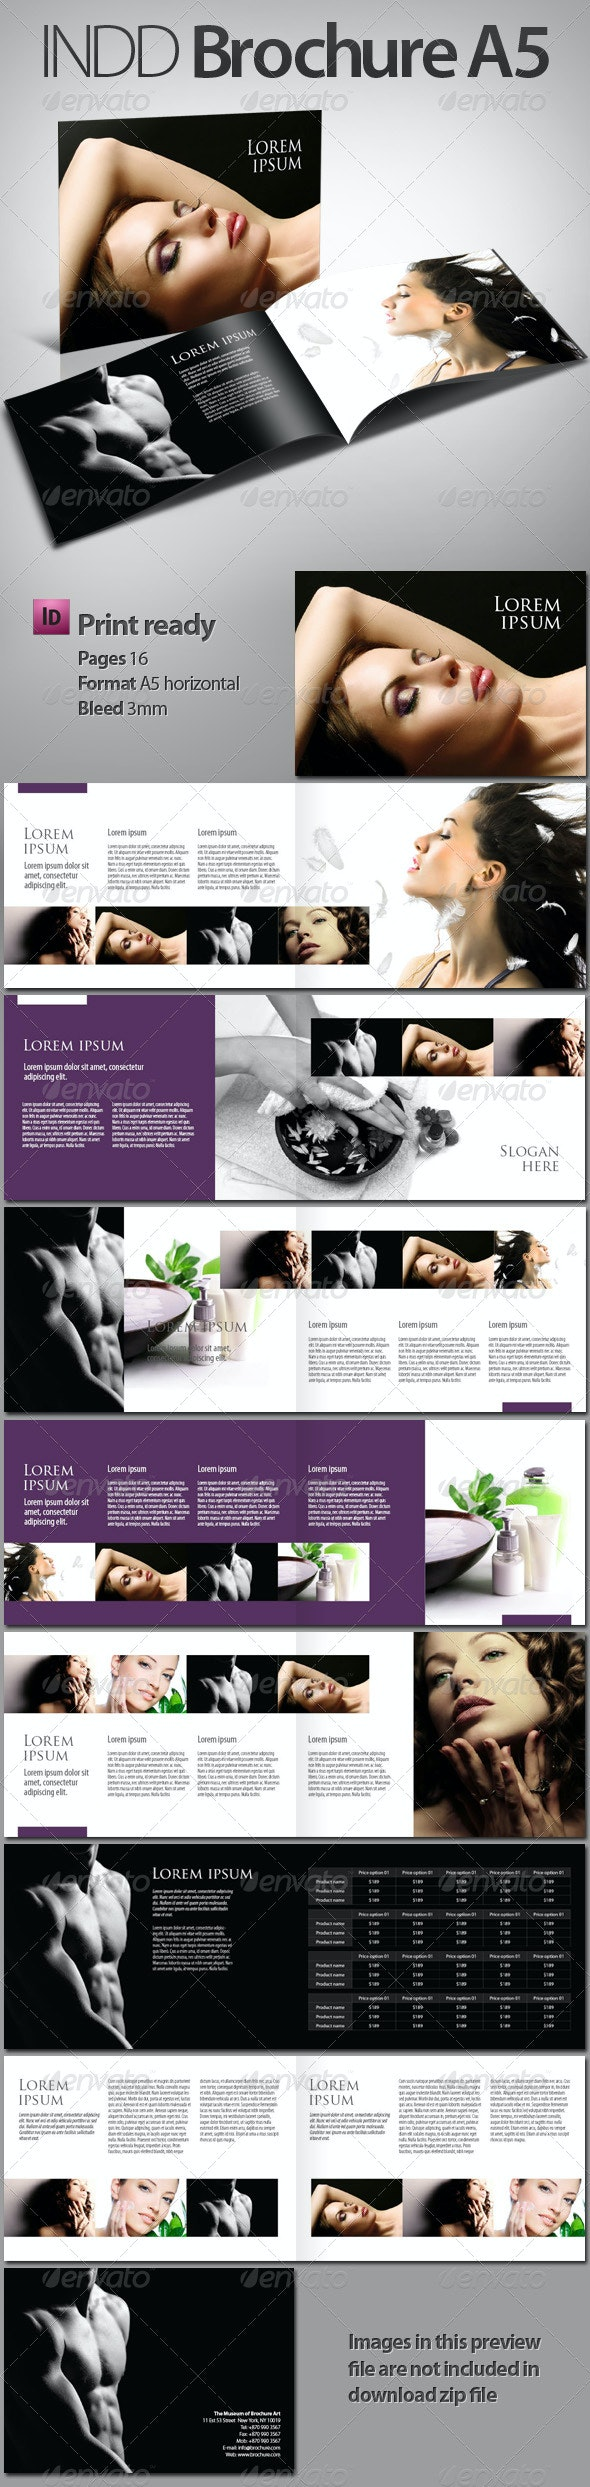 INDD Brochure - booklet A5 - Corporate Brochures